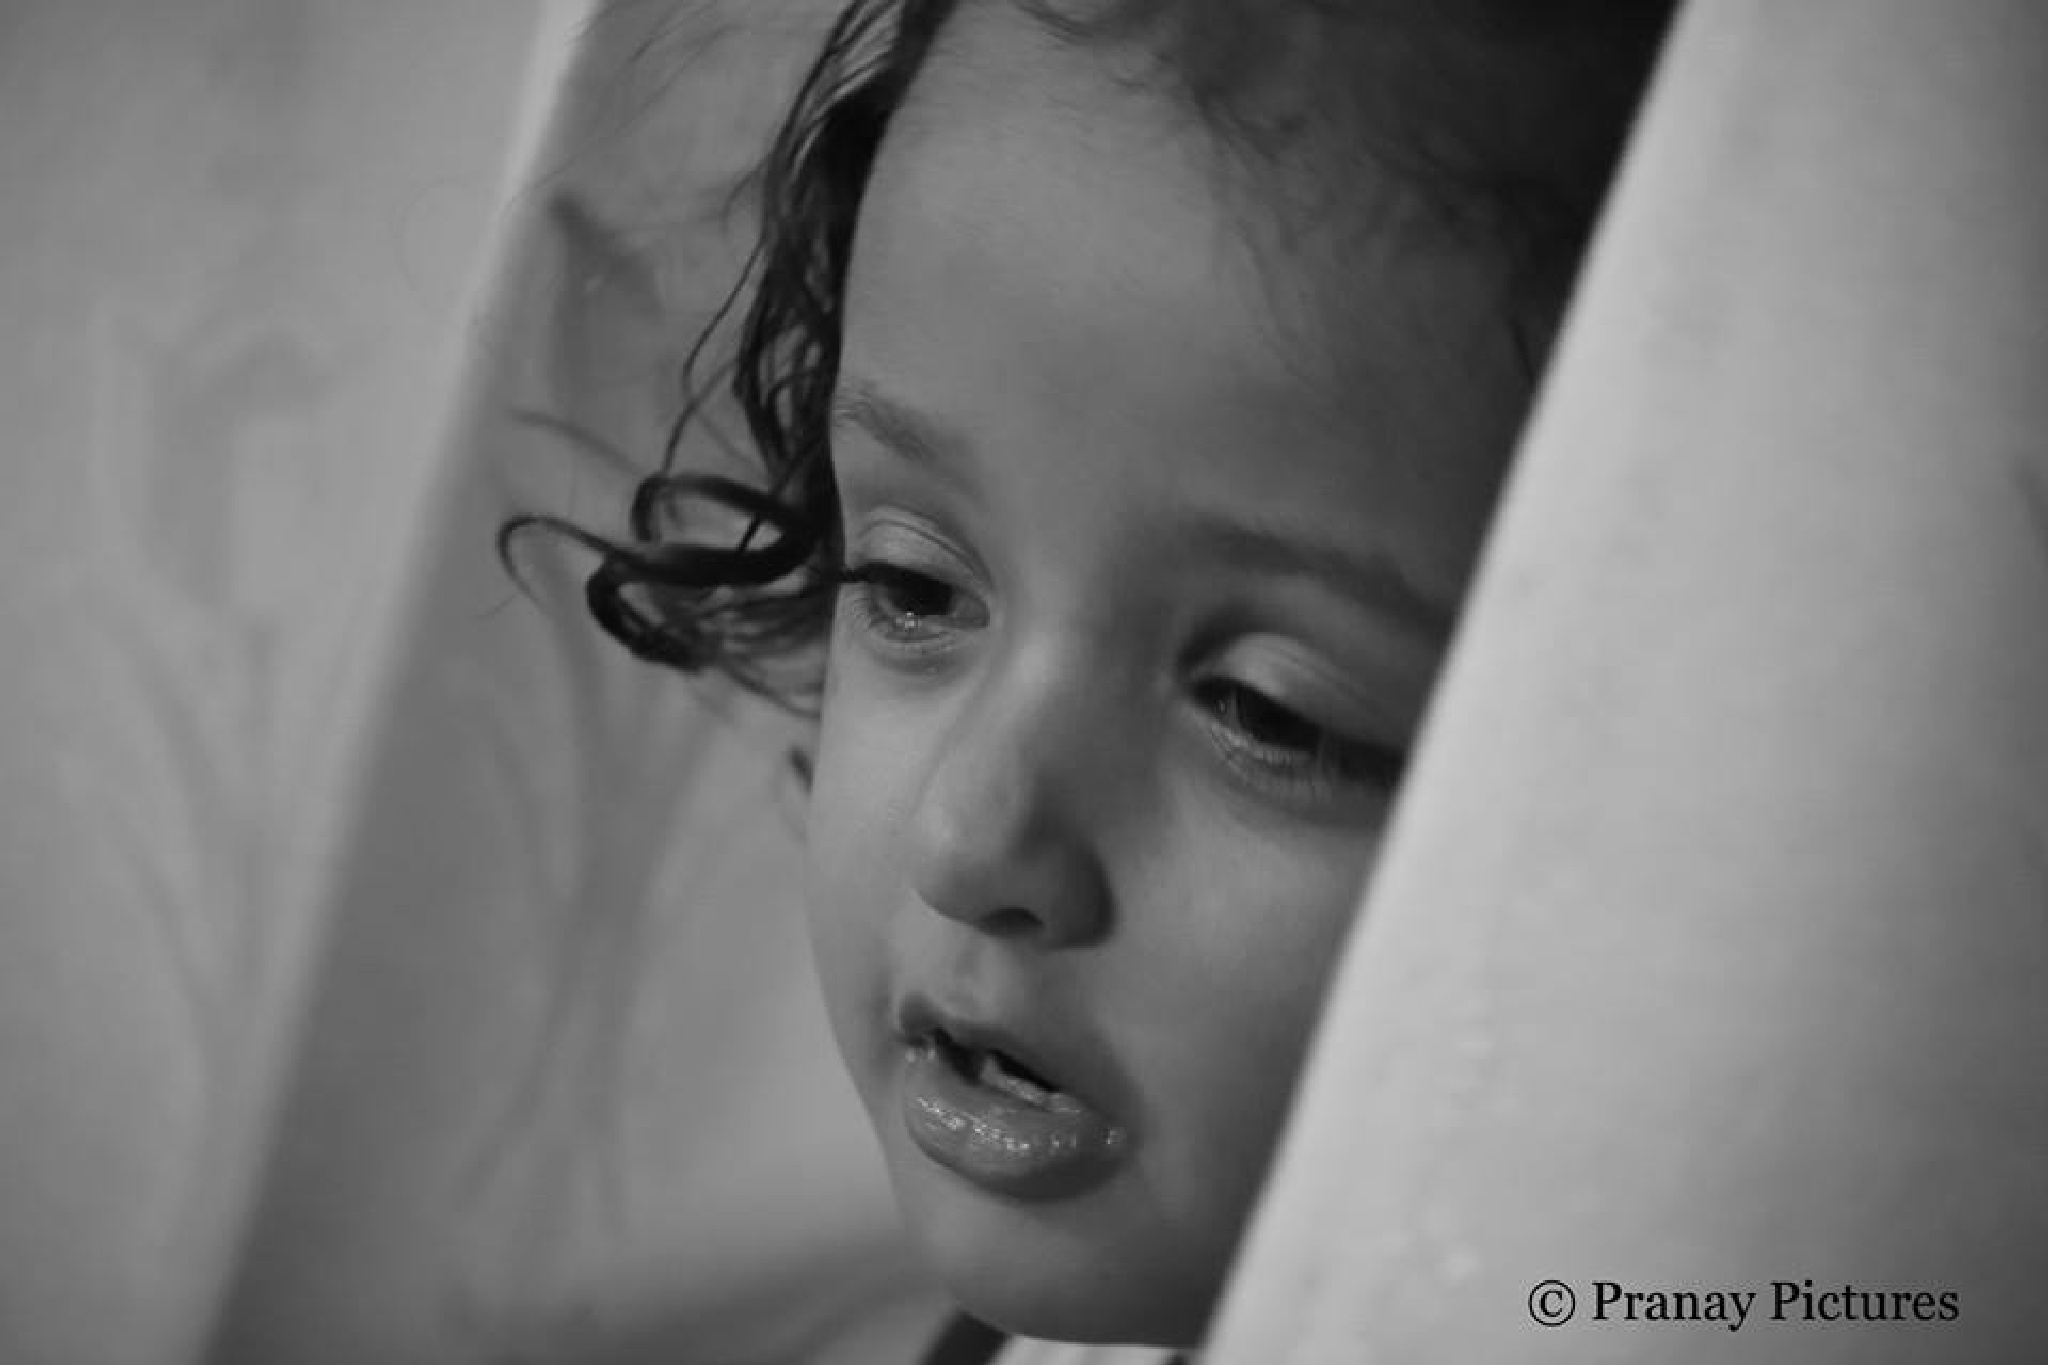 Innocent Girl 2 by Pranay Pictures